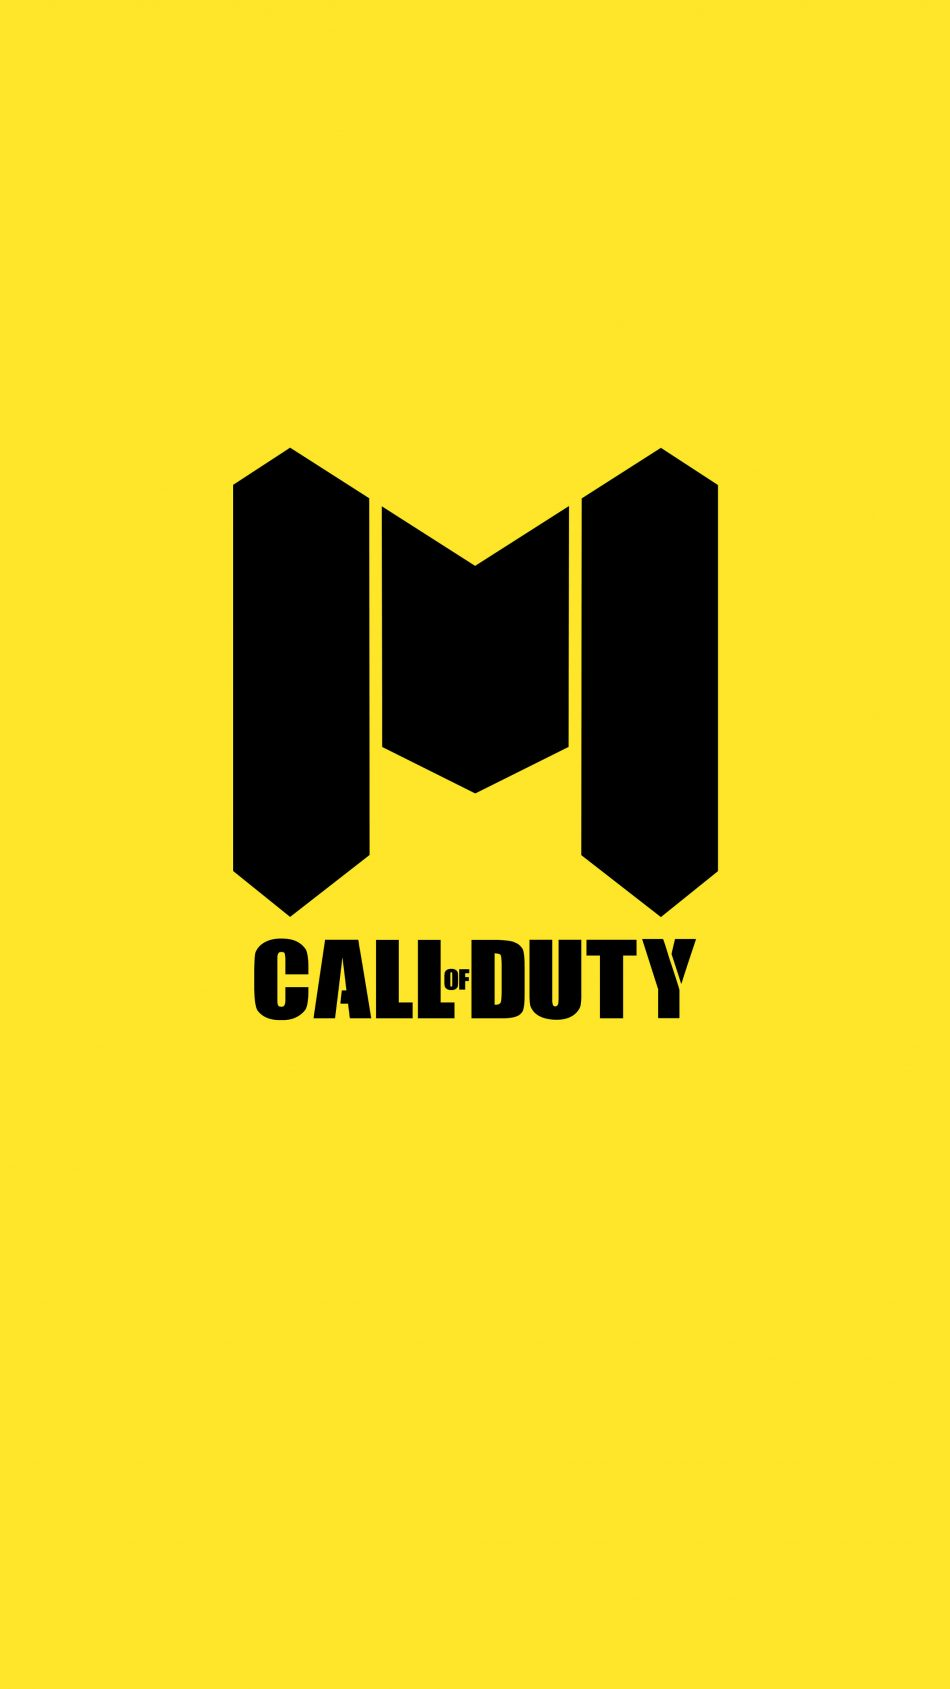 46+] Call Of Duty Logo Wallpapers on WallpaperSafari.